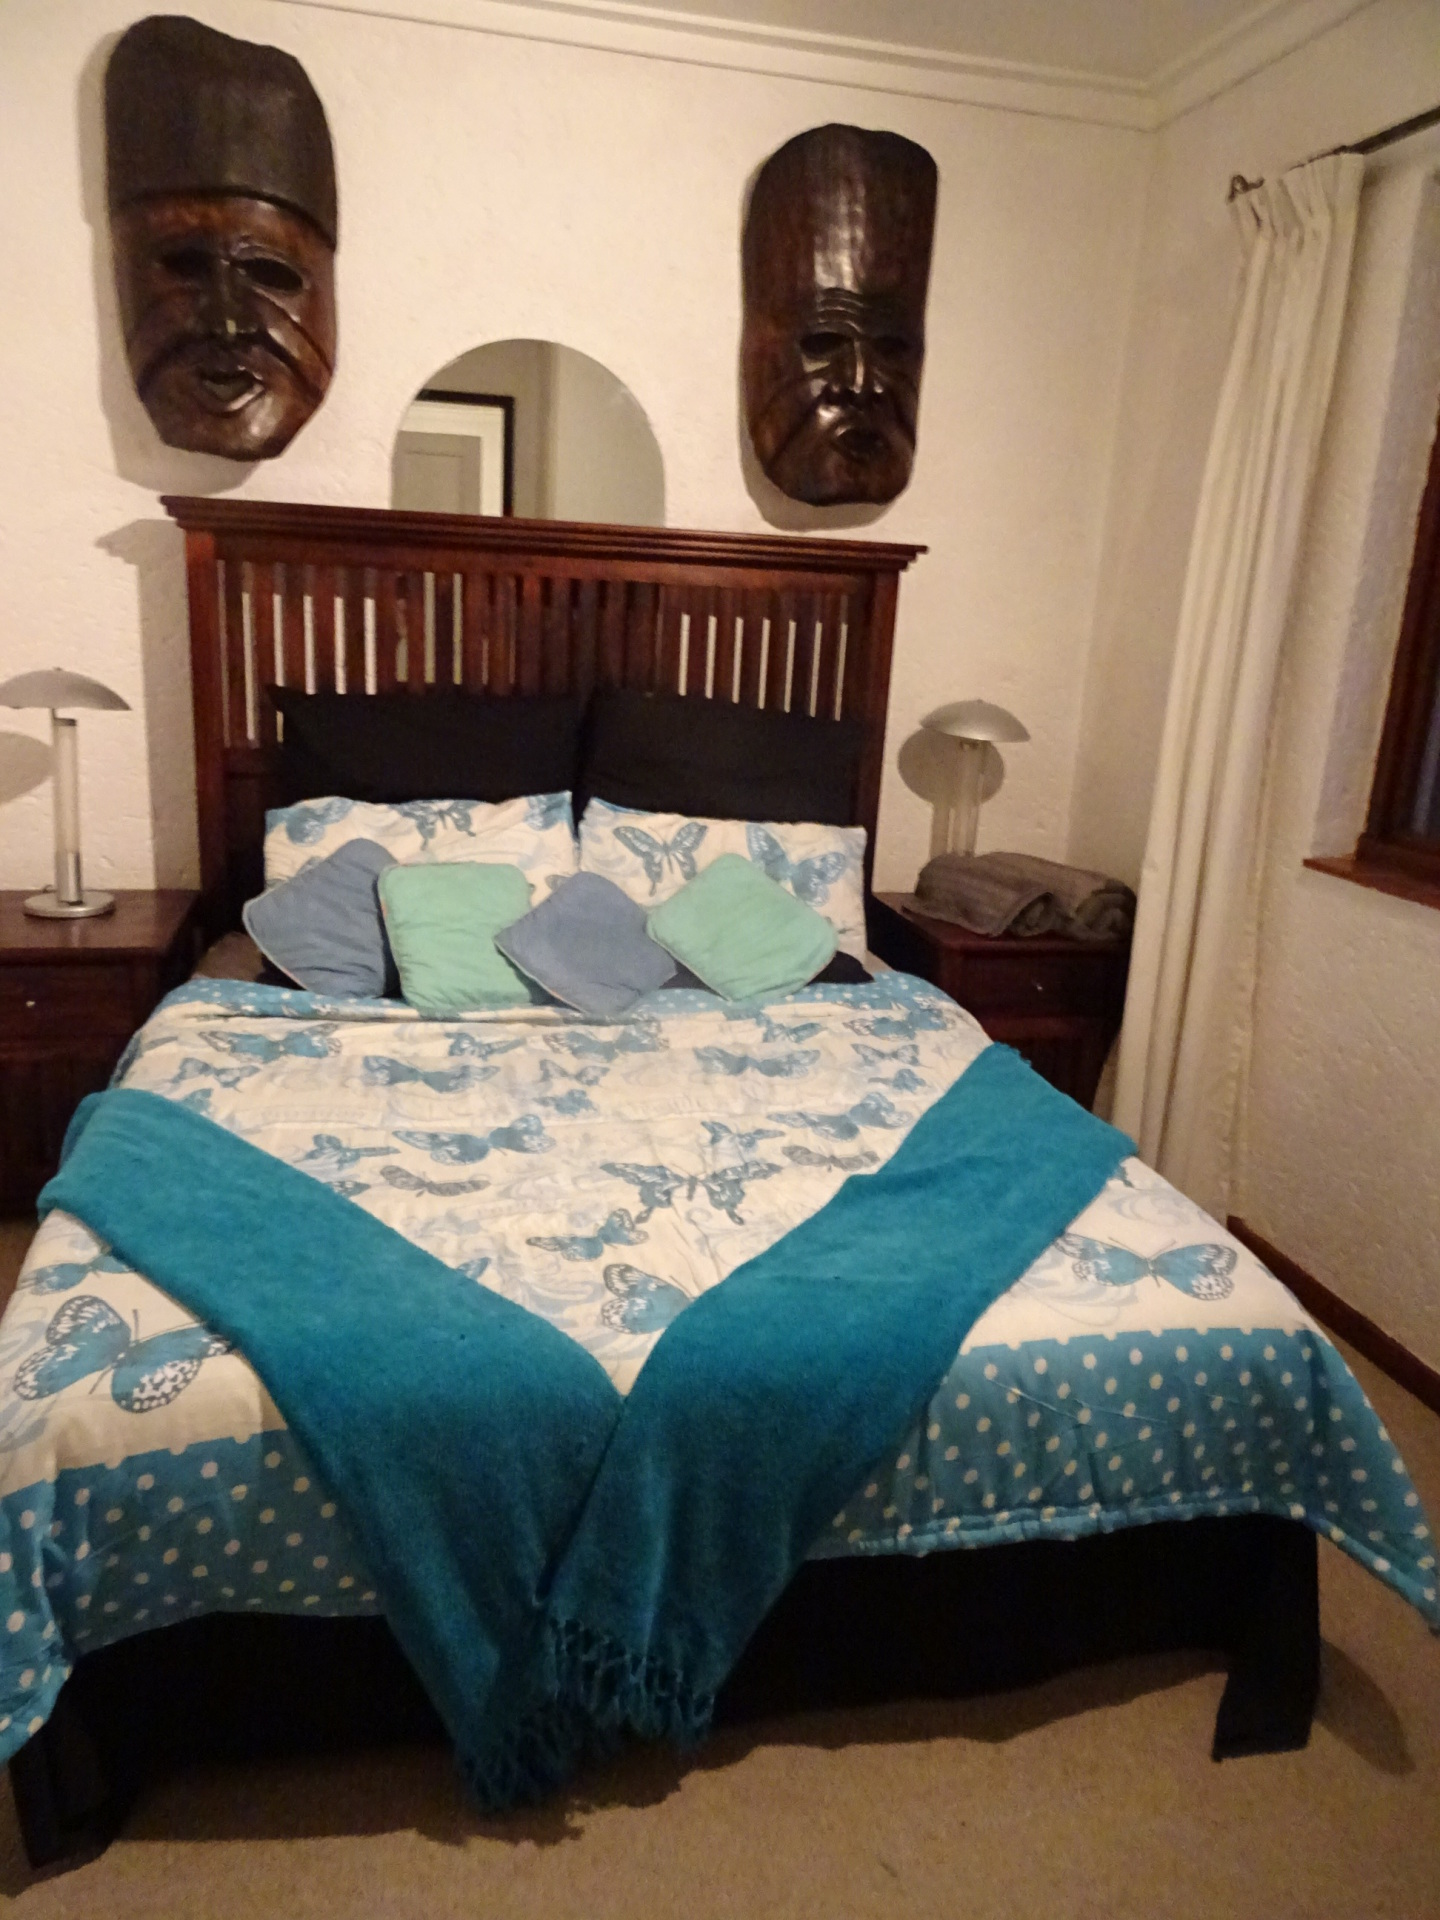 Mask bedroom upstairs, with Queen size bed - Weekend getaway in Hartbeespoort dam